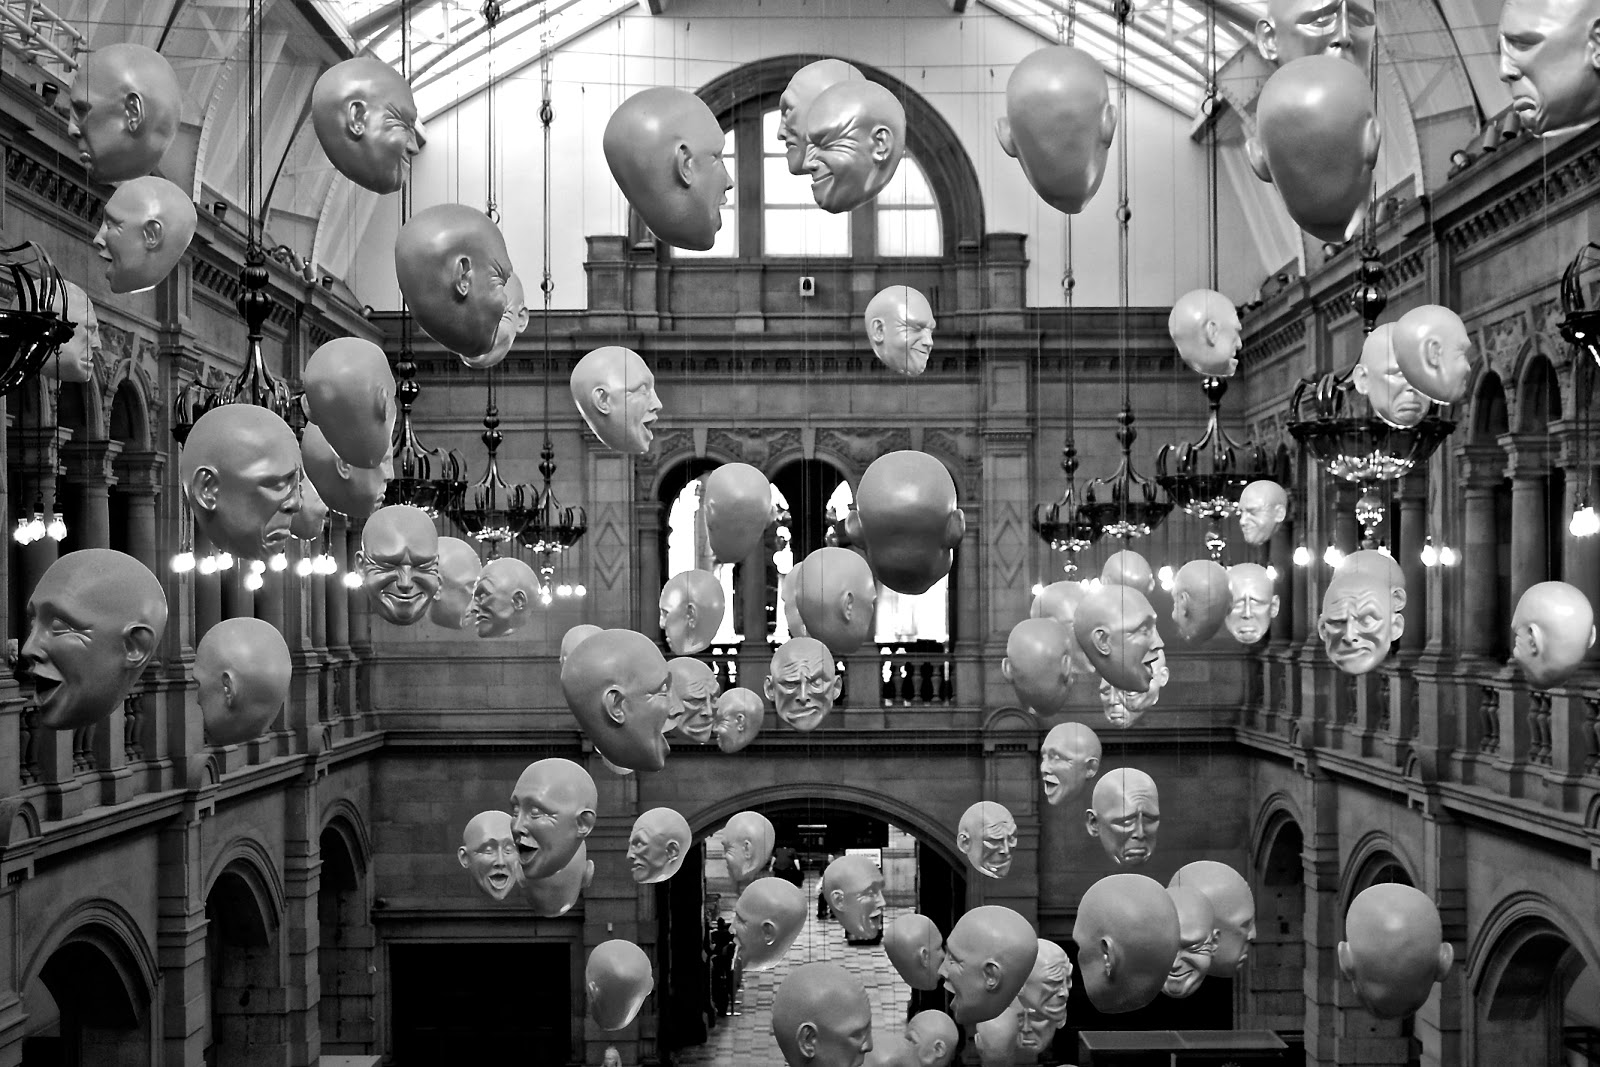 Floating heads in the Kelvingrove Museum, Glasgow, Scotland